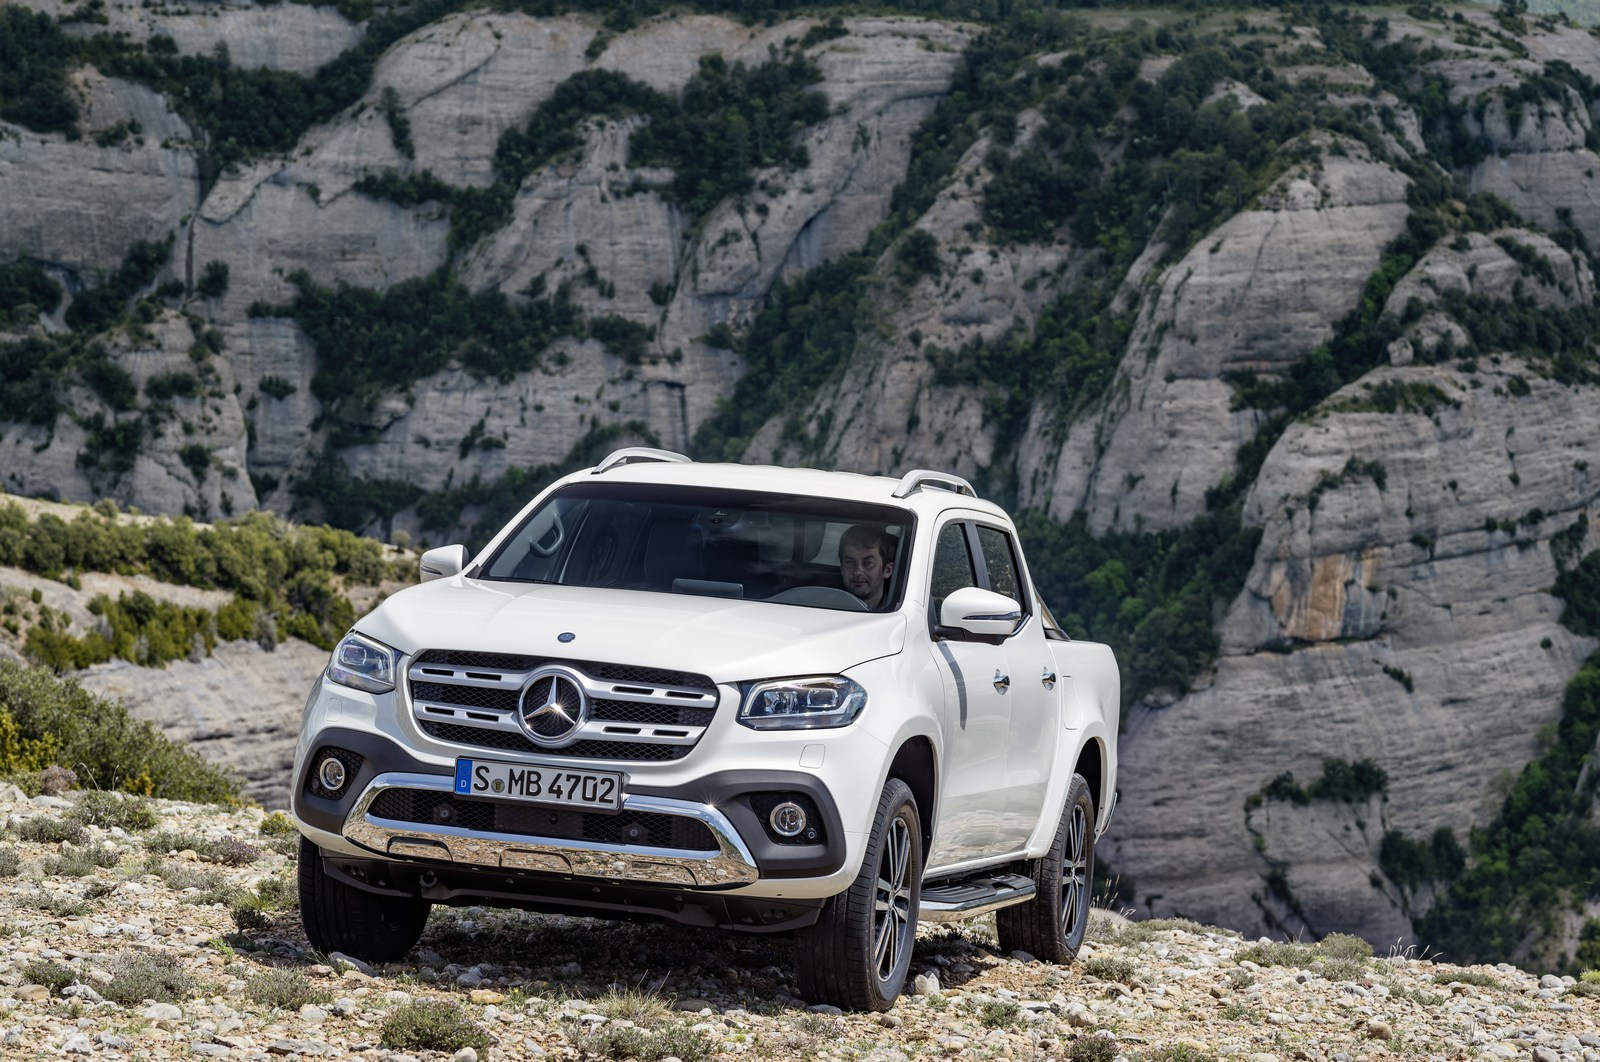 Mercedes x class pickup image gallery autocar india for Camioneta mercedes benz